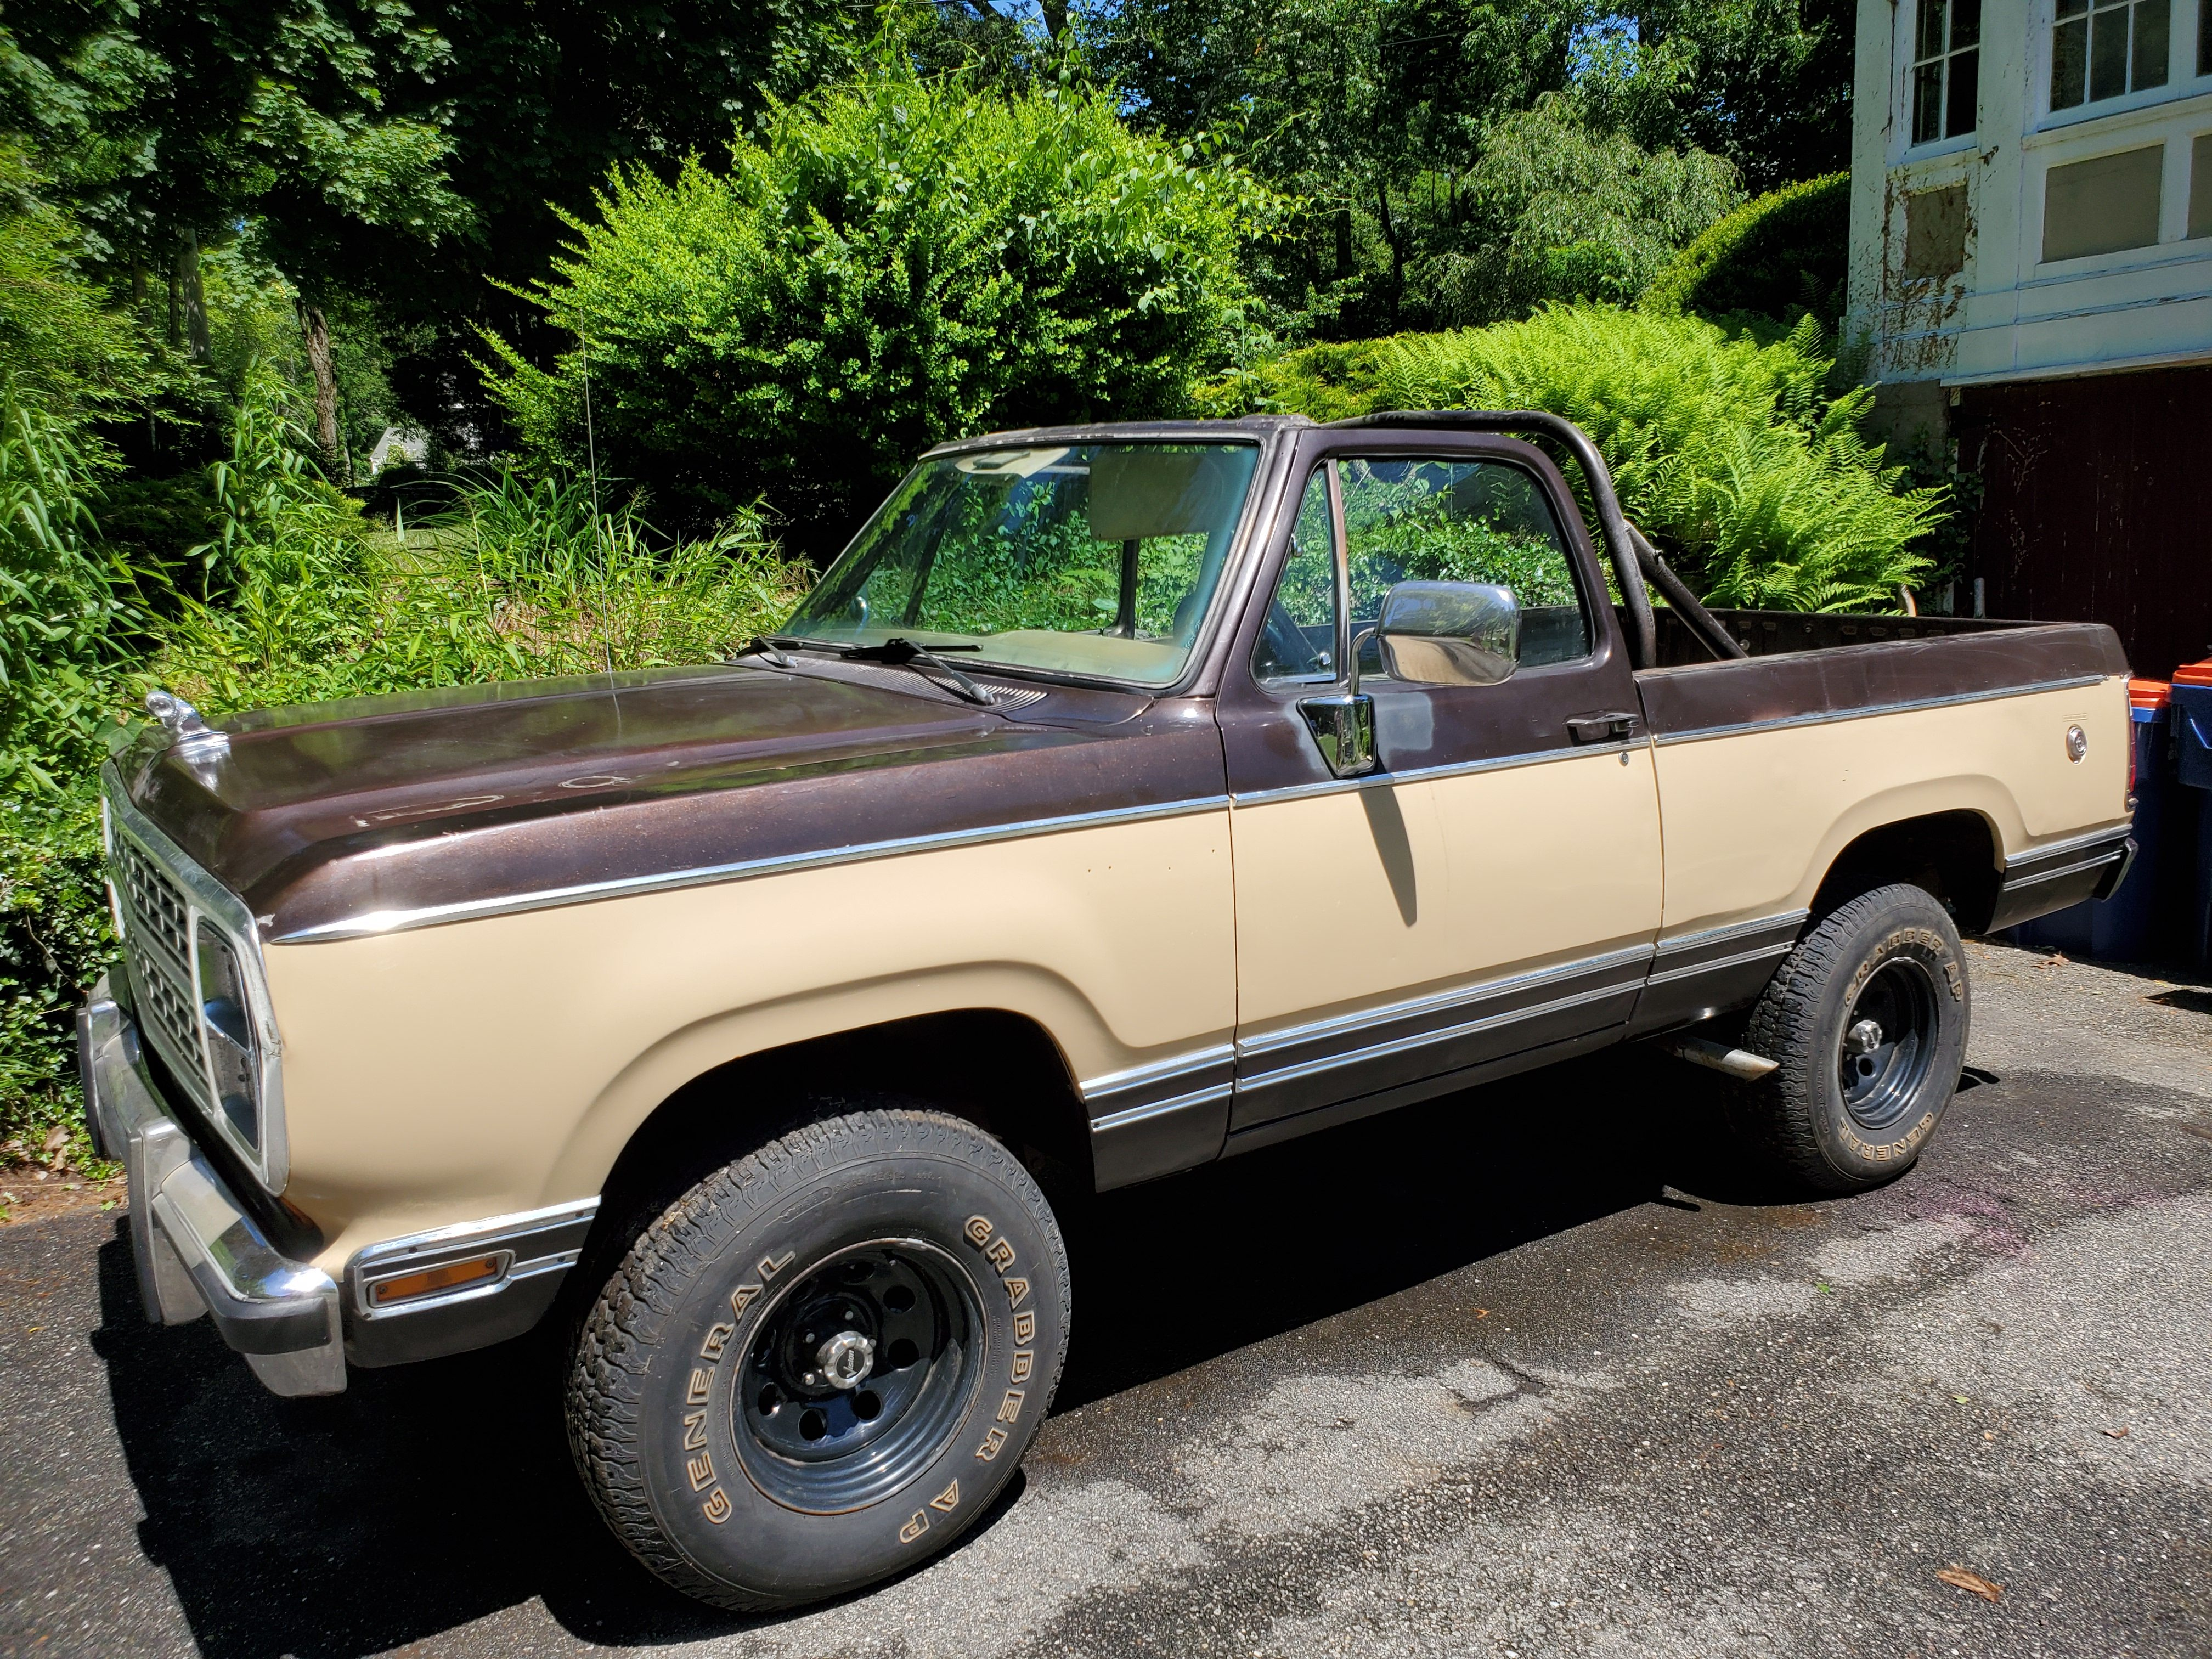 Introducing: Project Beachcomber, our 1979 Dodge Ramcharger